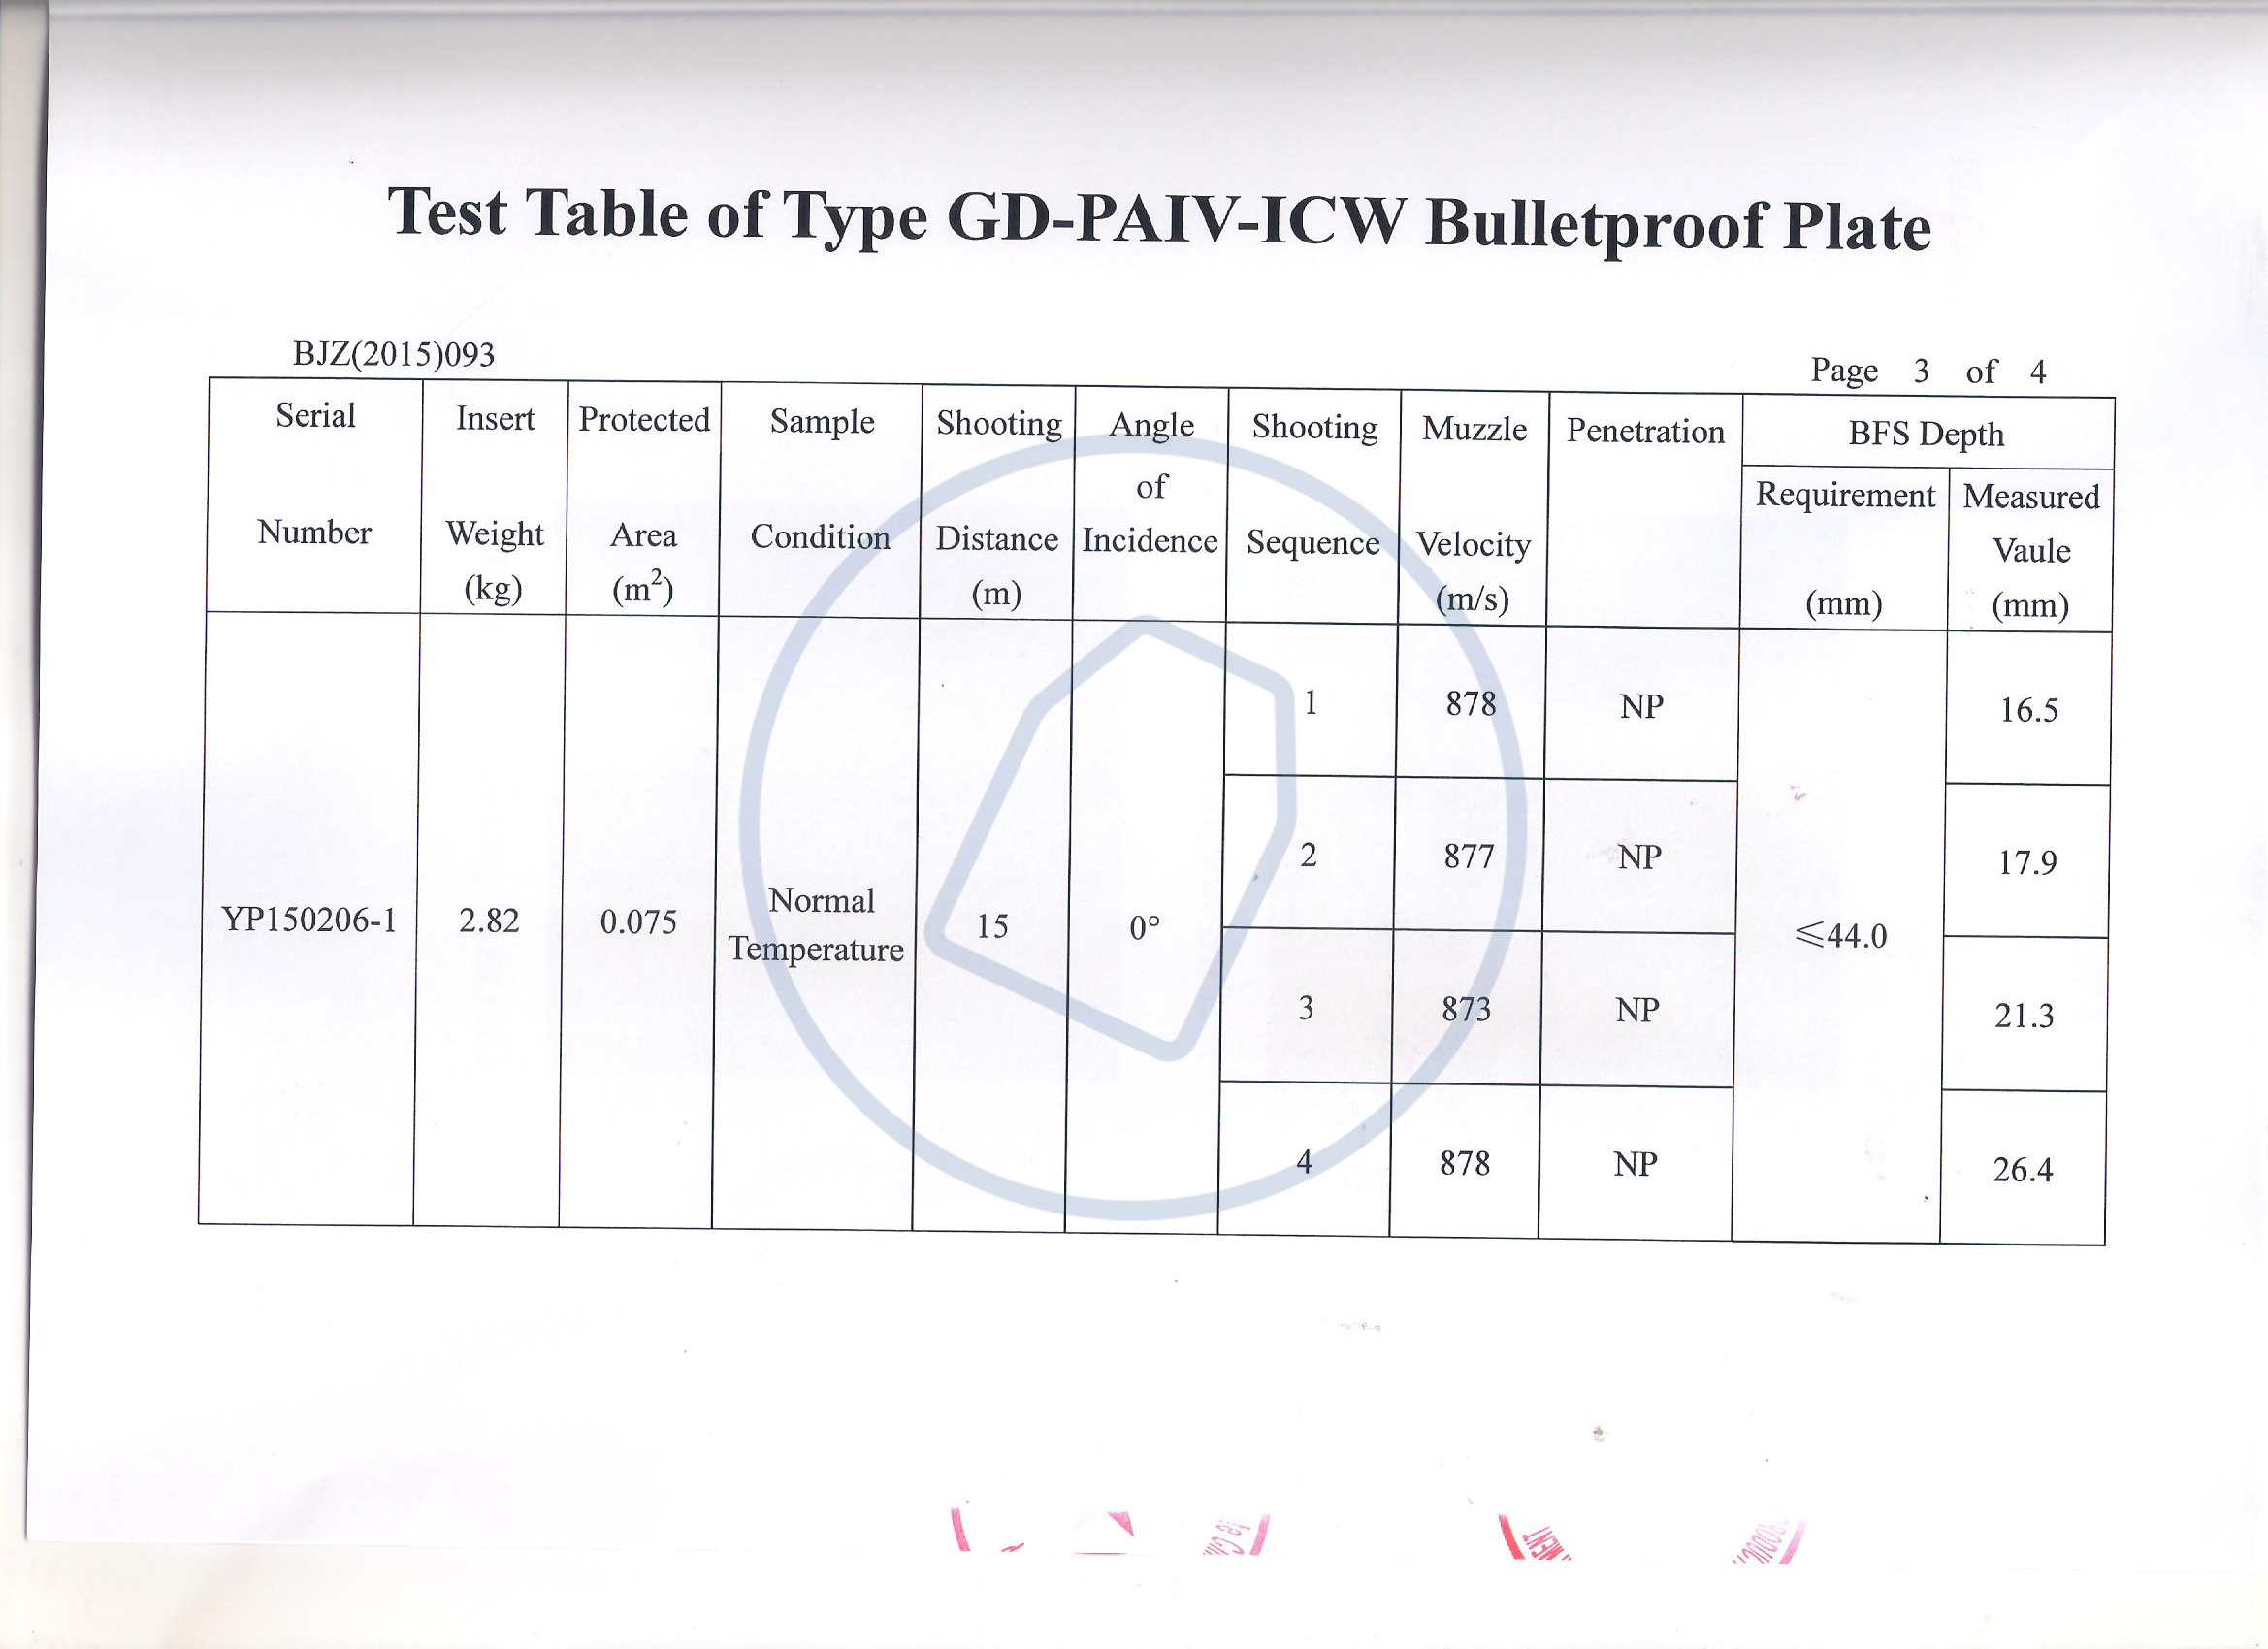 gd paiv icw test report of nij 010106 level iv (1)